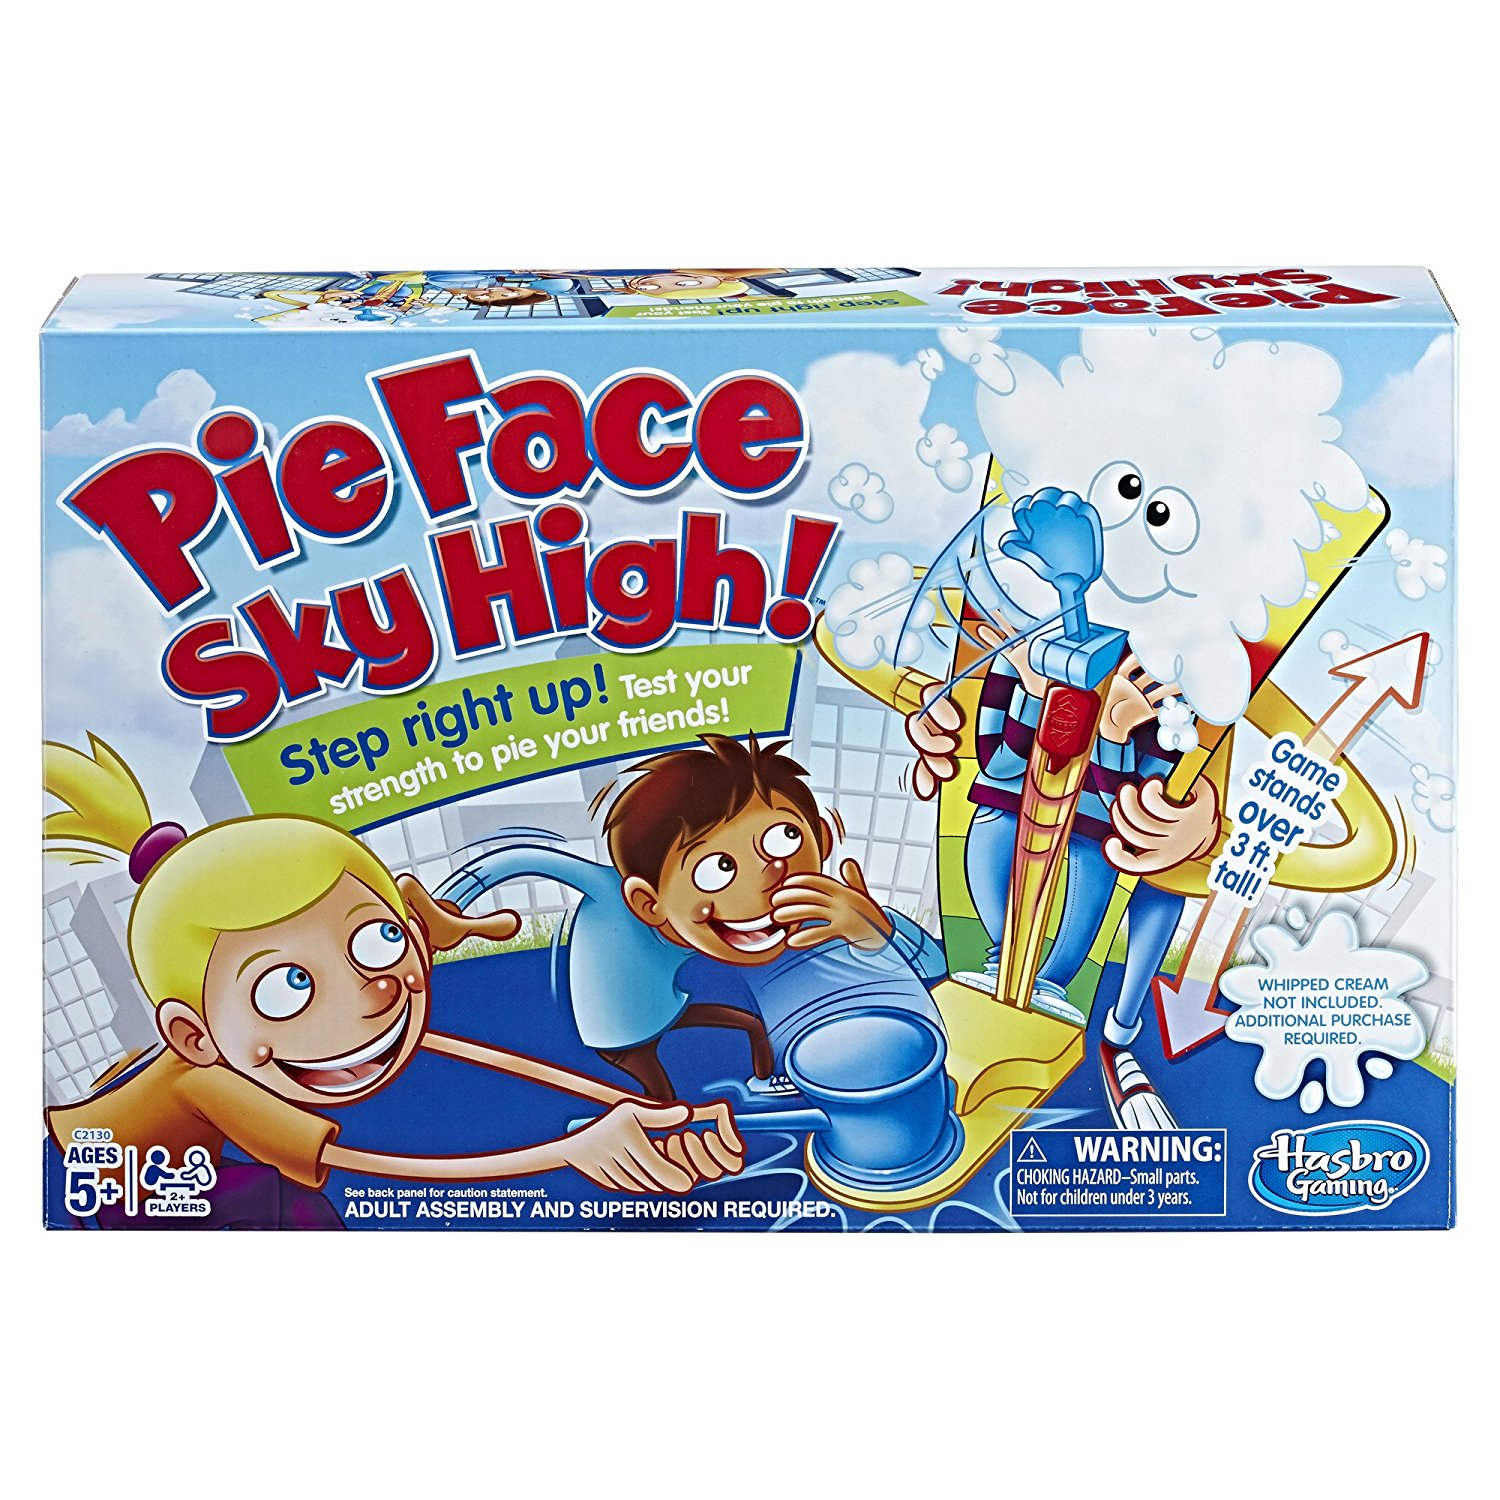 7. Pie Face Sky High Game